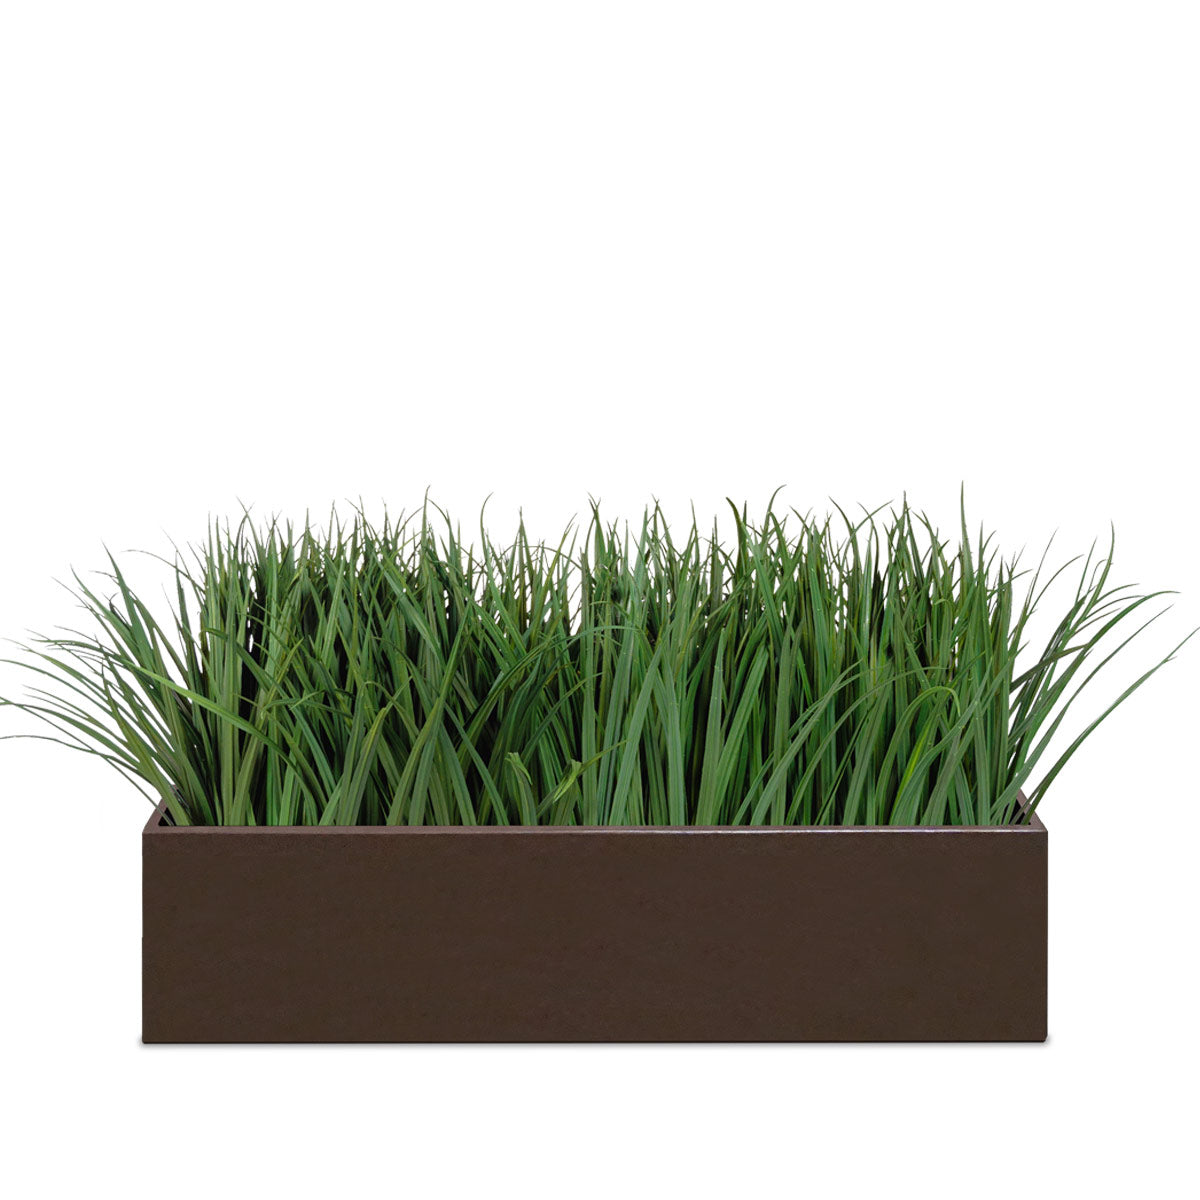 Grass: Liriope Planter for Base of Movable Partition Wall, Bronze Black